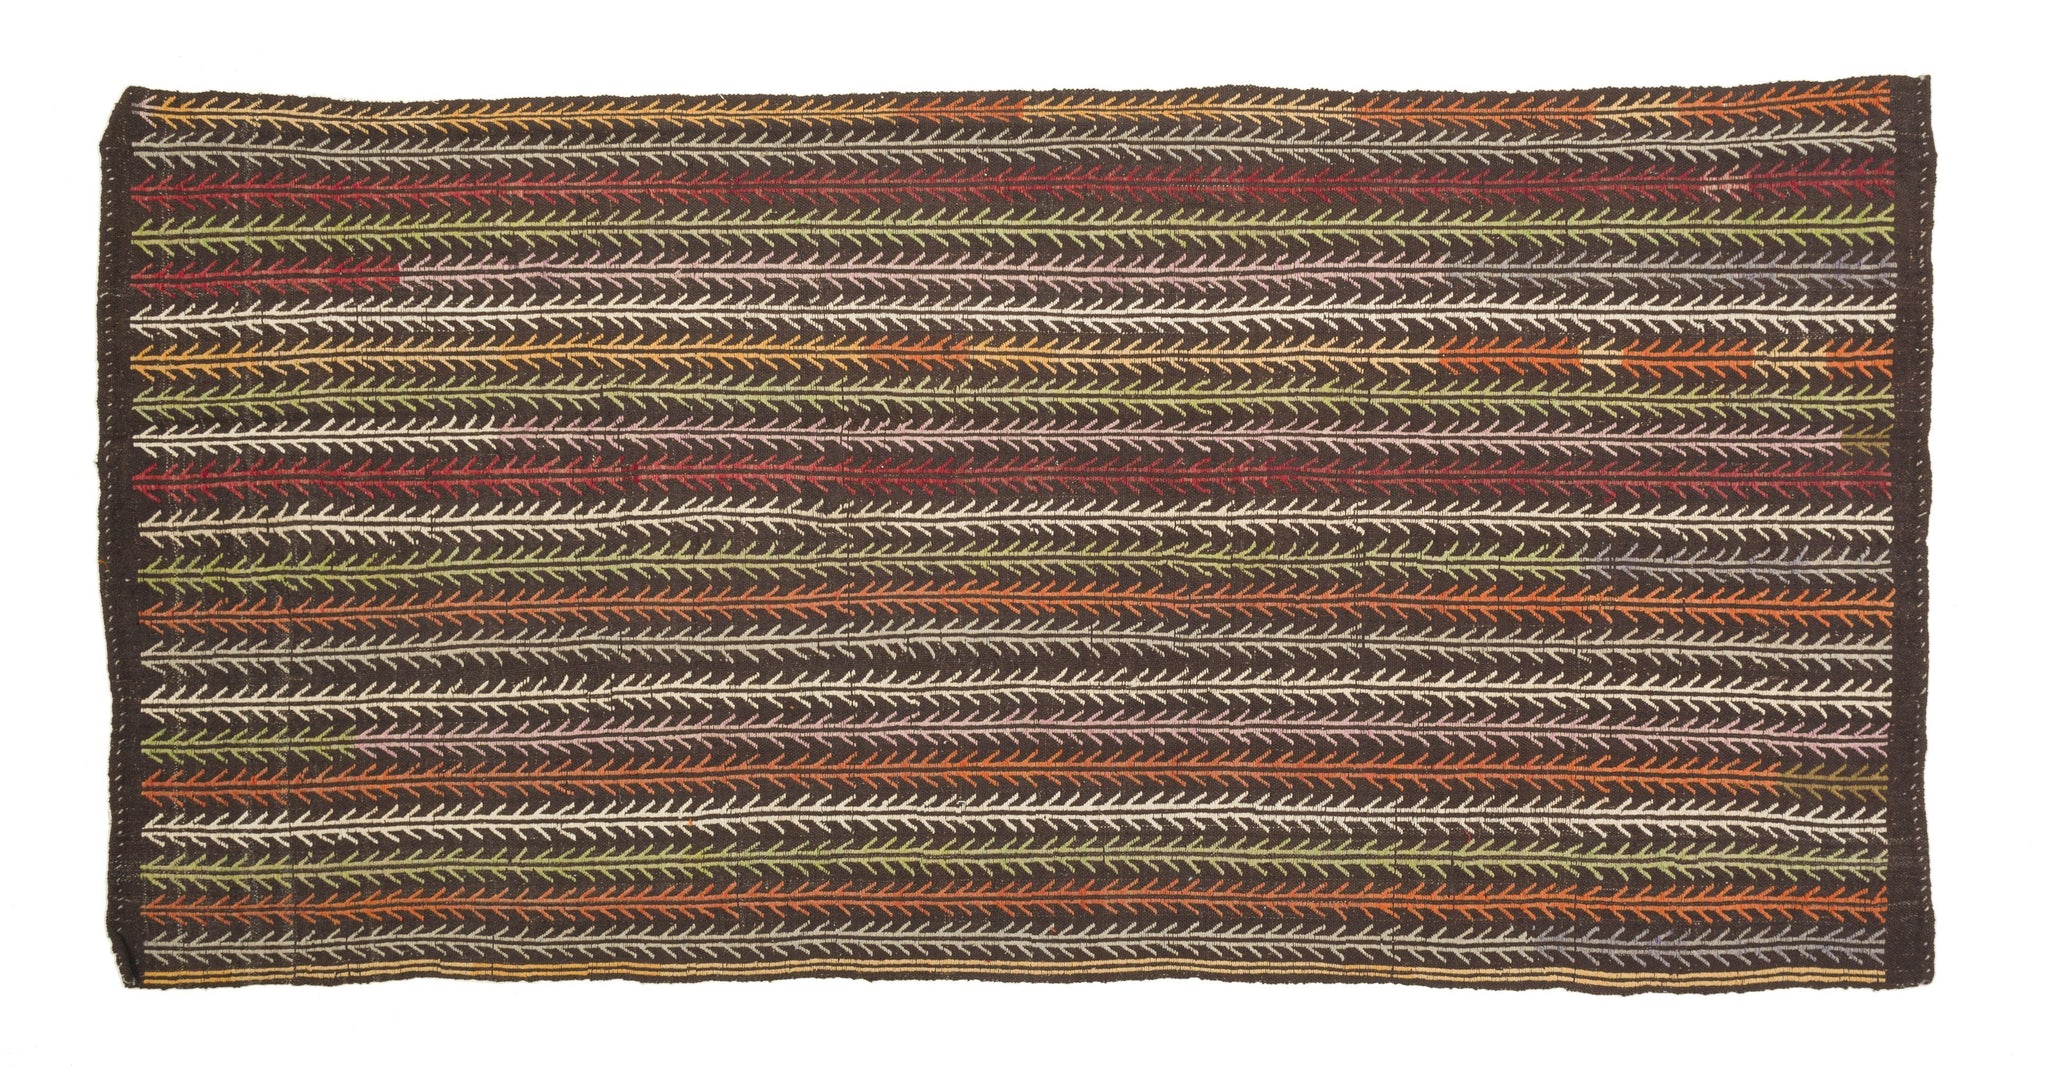 Vintage Tribal Kilim Rug Cortney